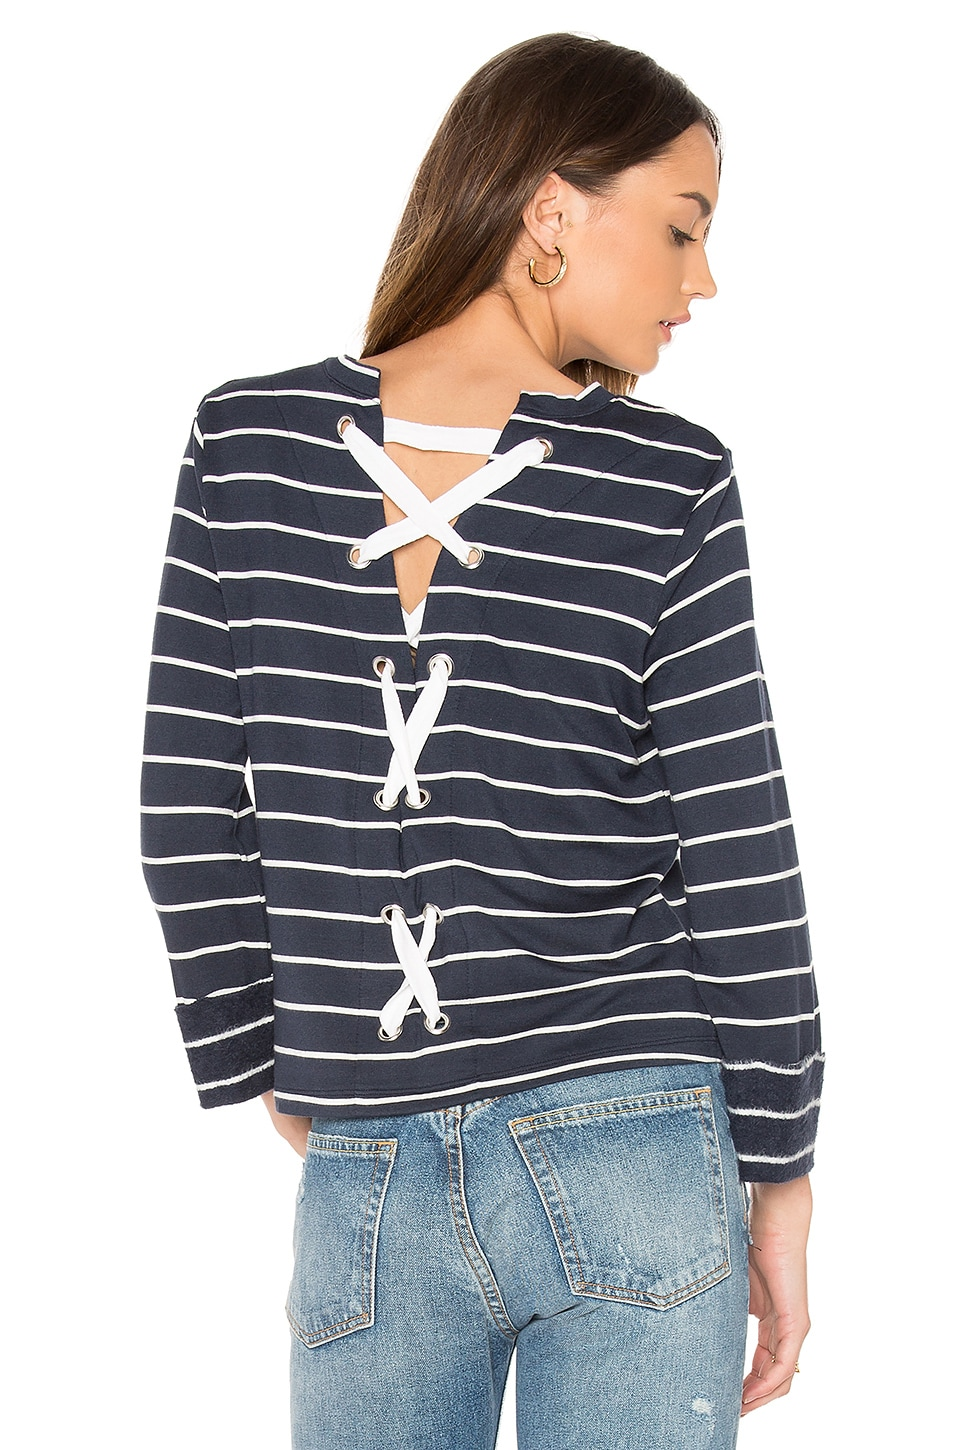 Splendid Dune Stripe Lace Up Back Top in Navy & White